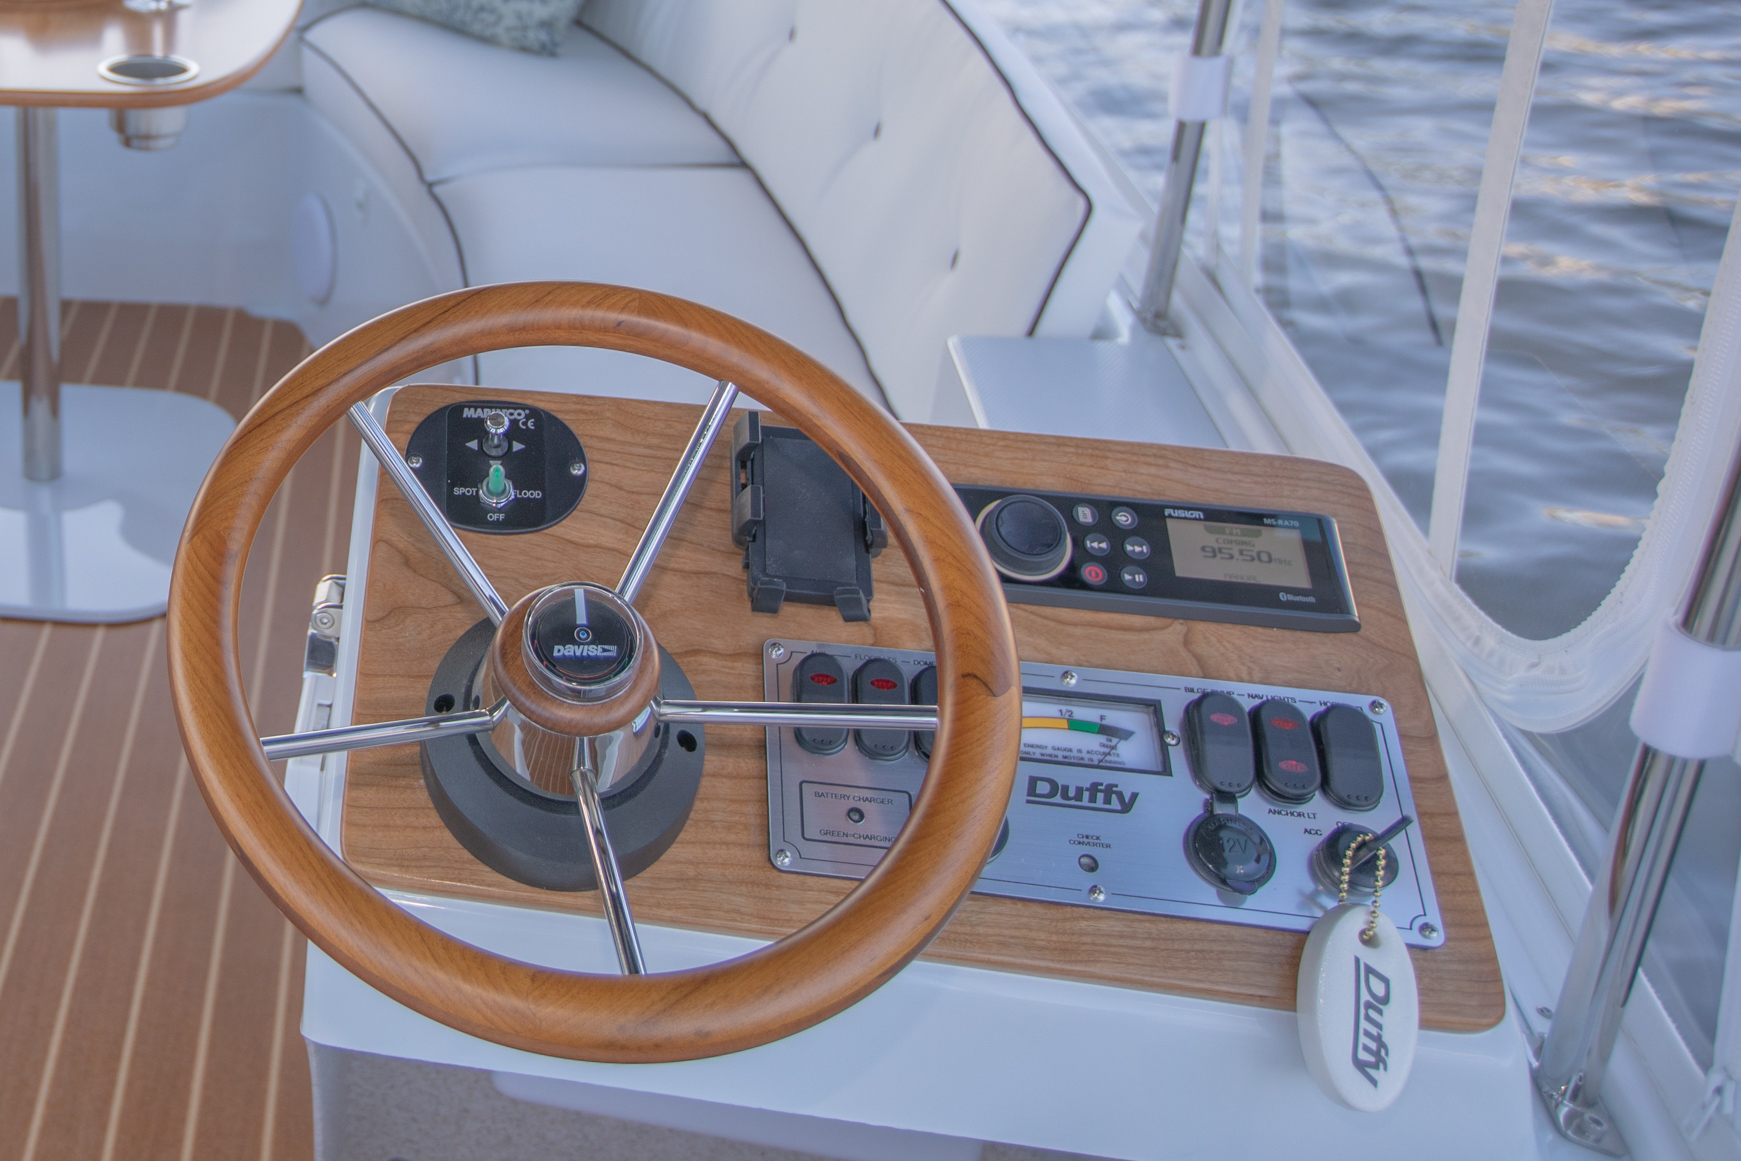 Duffy-Electric-Boats-18-Snug-Harbor-Interior-2020-10